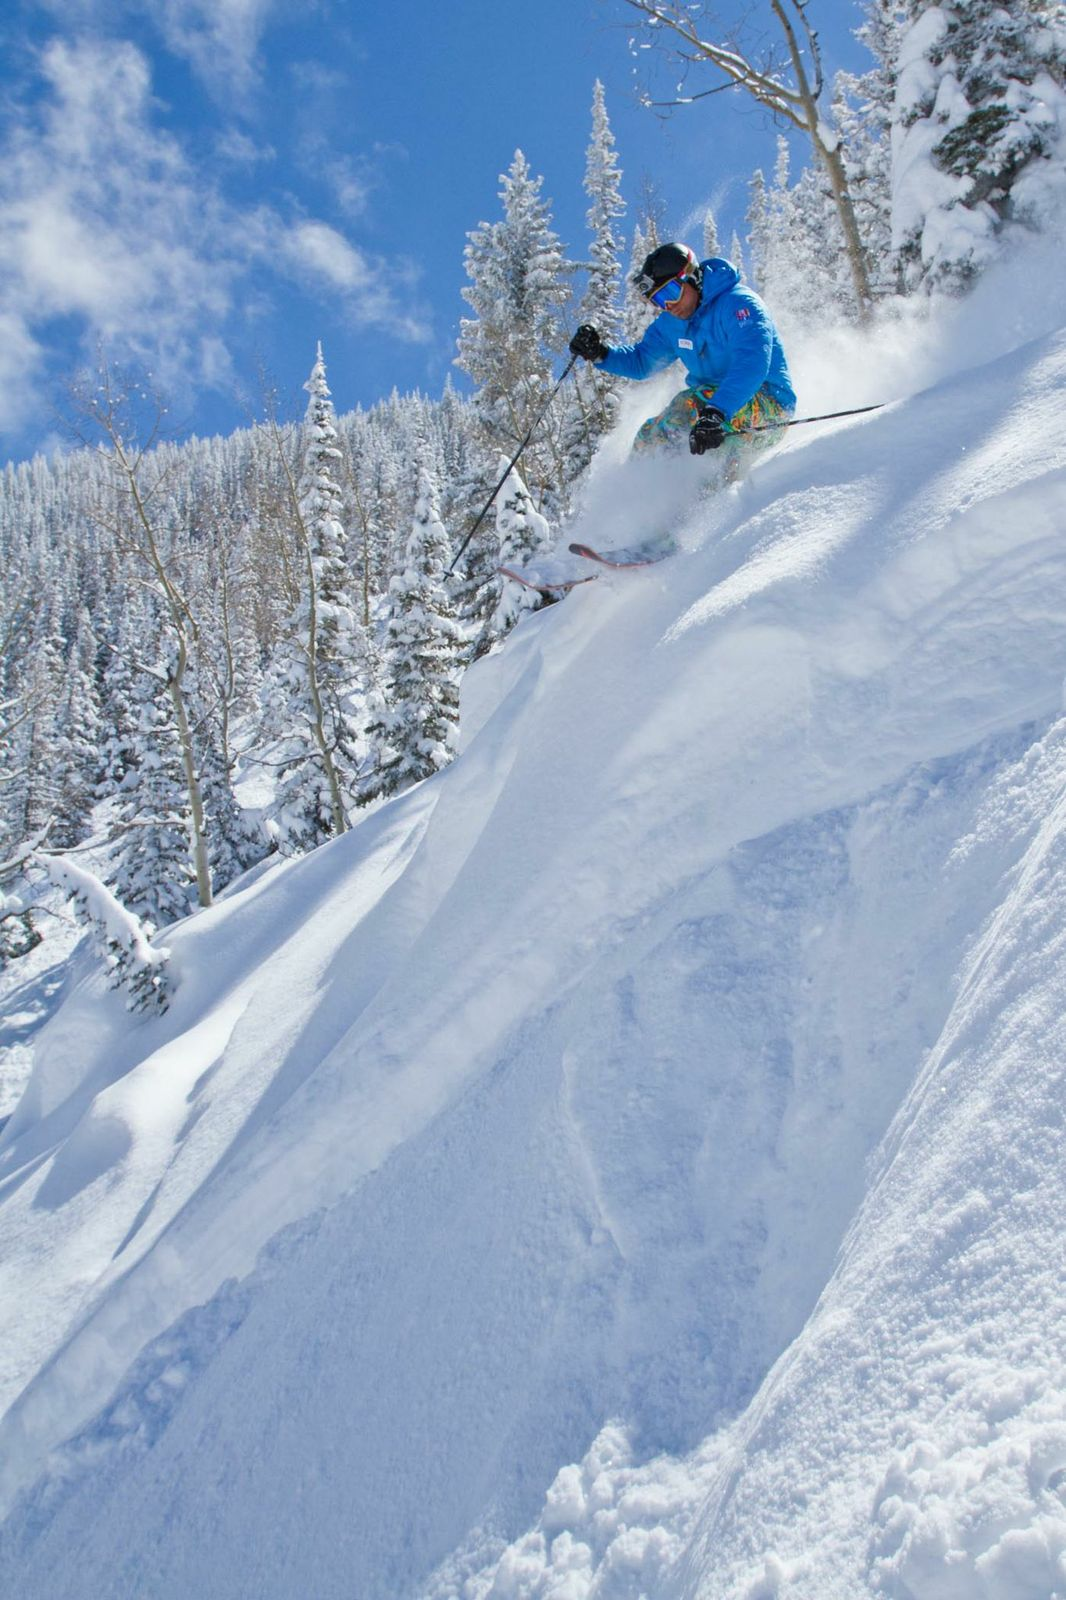 Chad Fleischer Powder Skiing